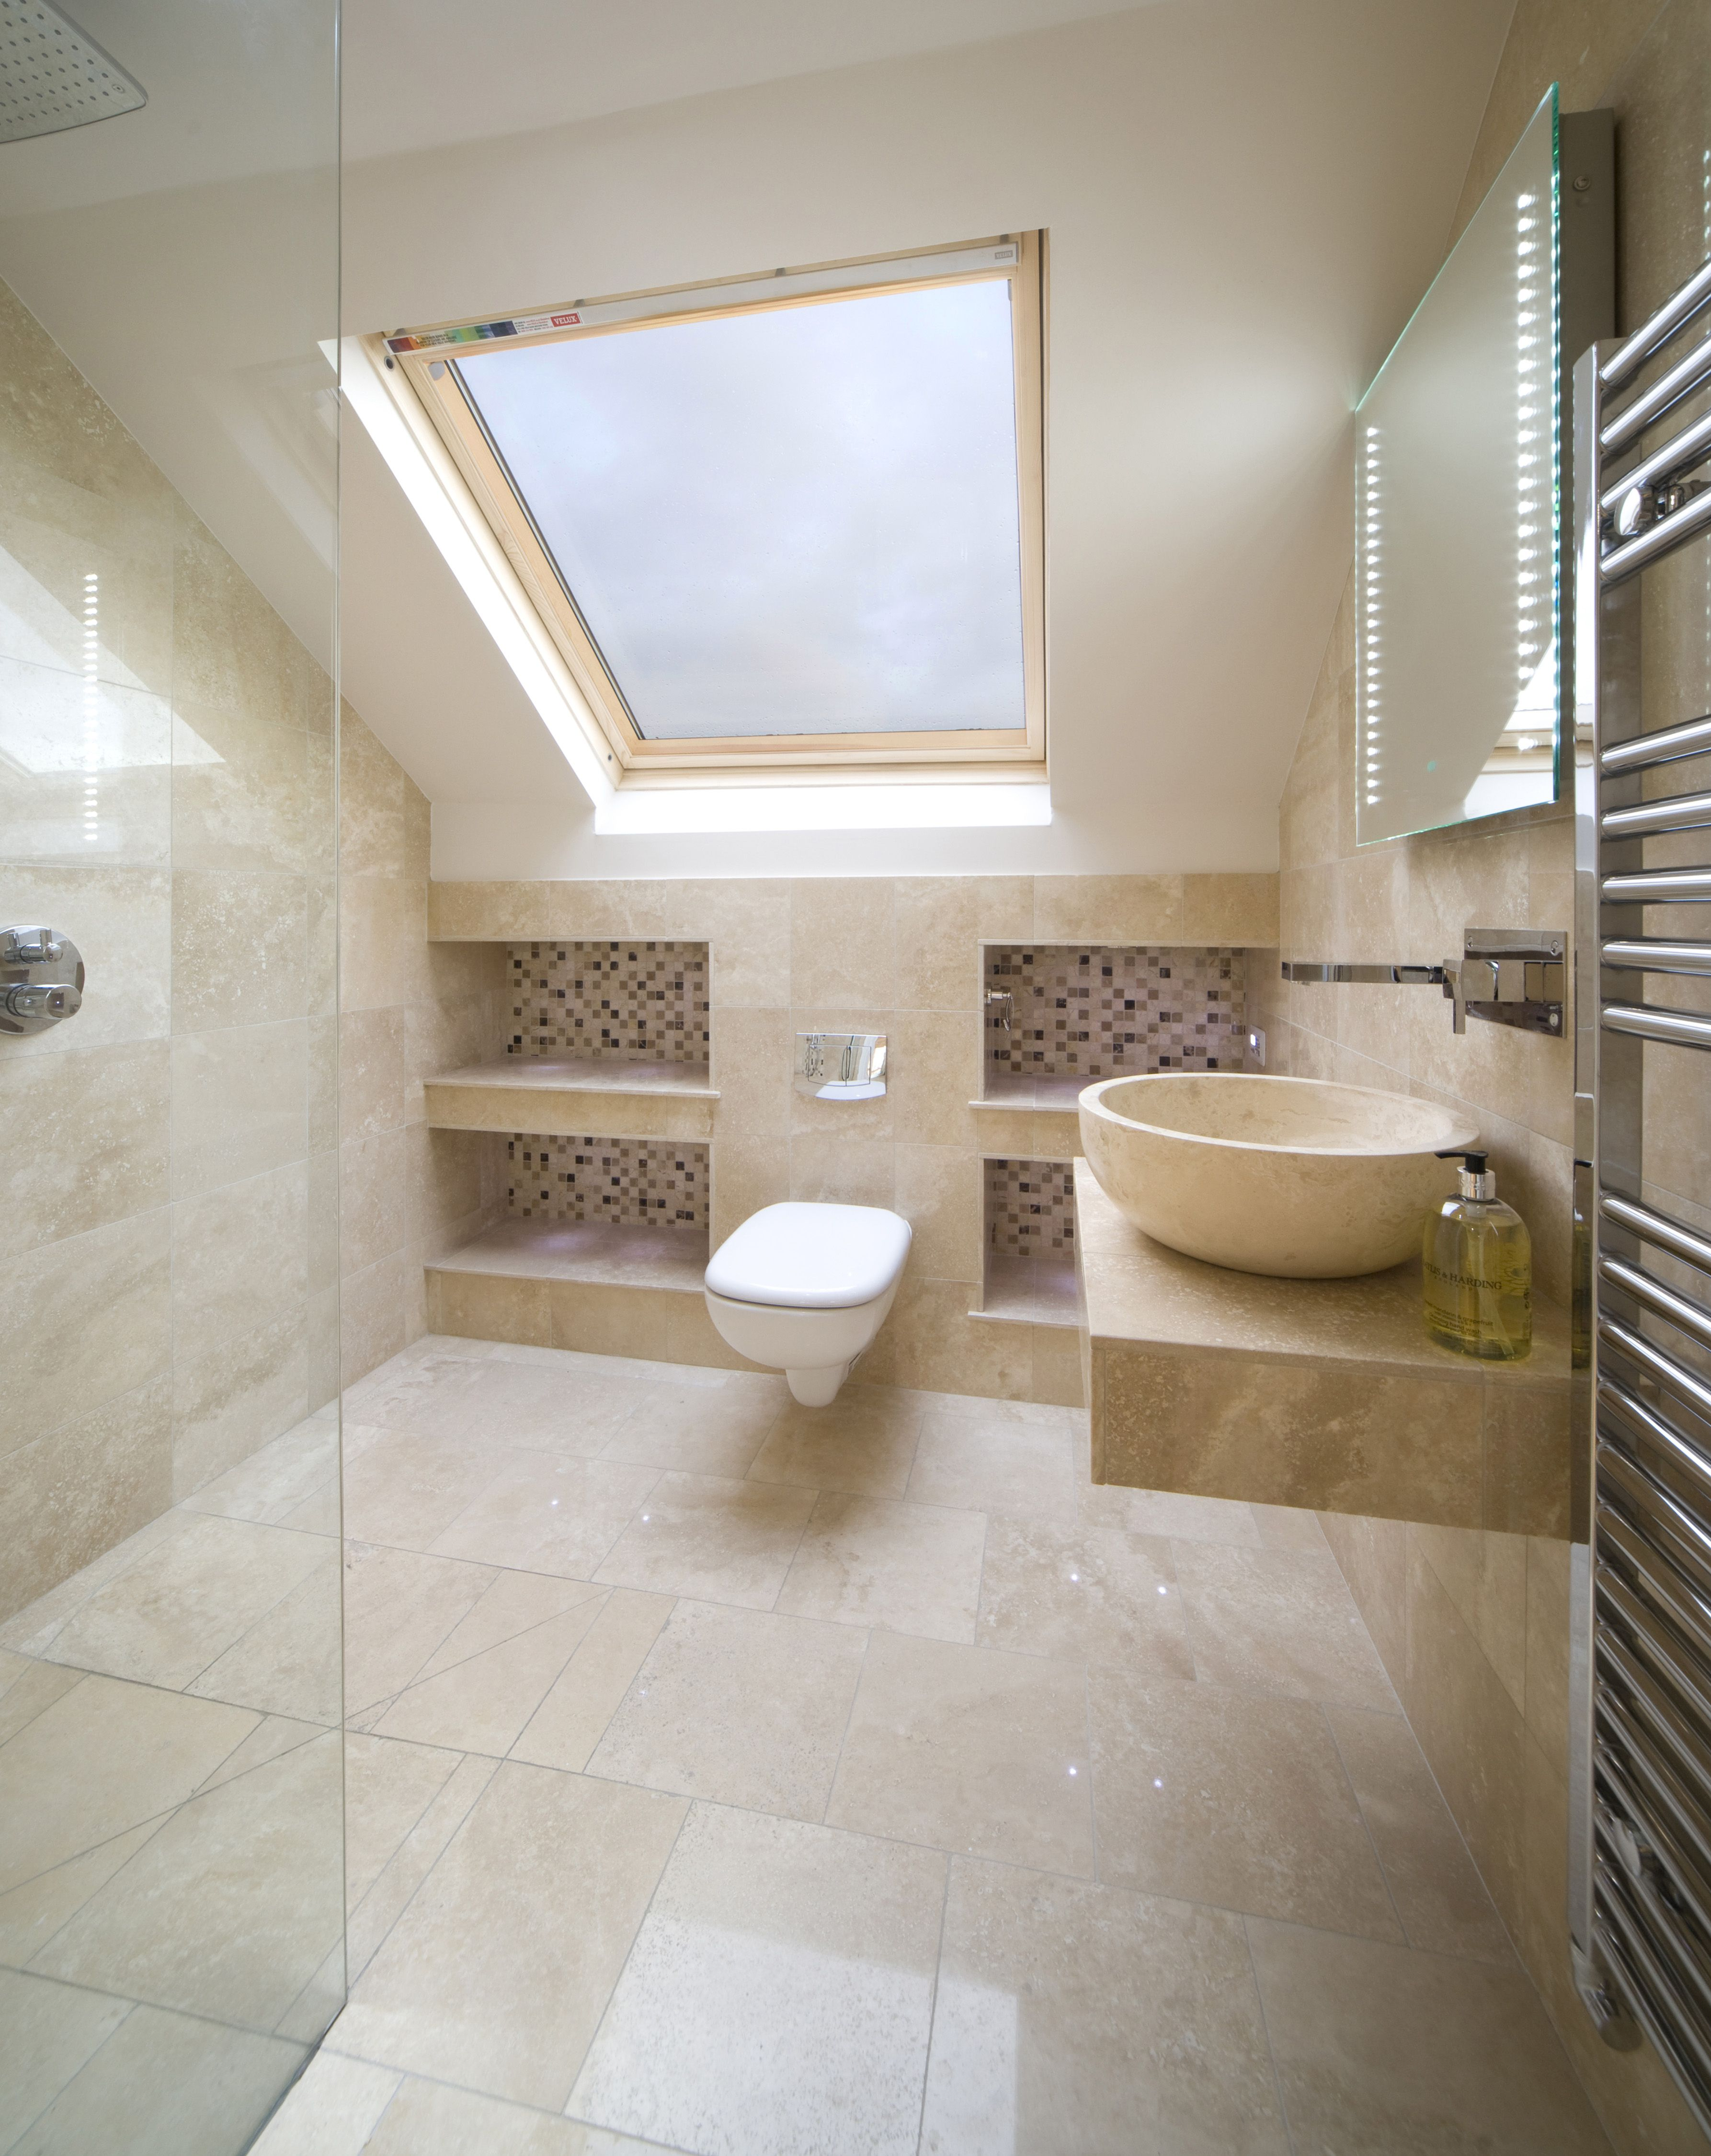 Loft Wetroom With Shelves Ensuite Bathroom Pinterest Lofts Shelves And Loft Bathroom